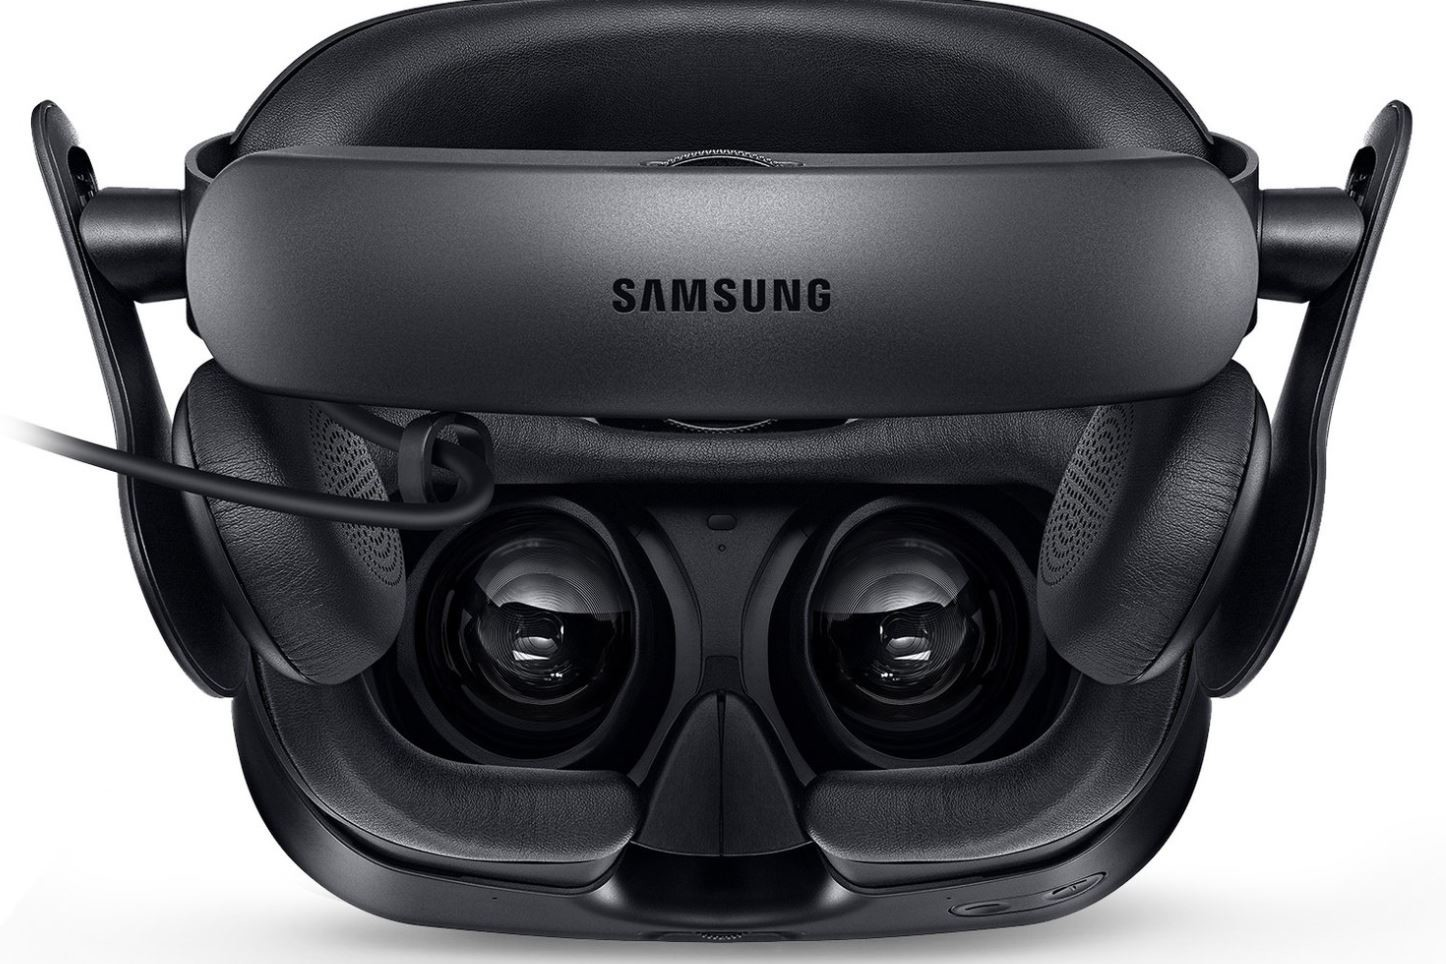 Samsung is working on a Windows Mixed Reality headset with built-in headphones